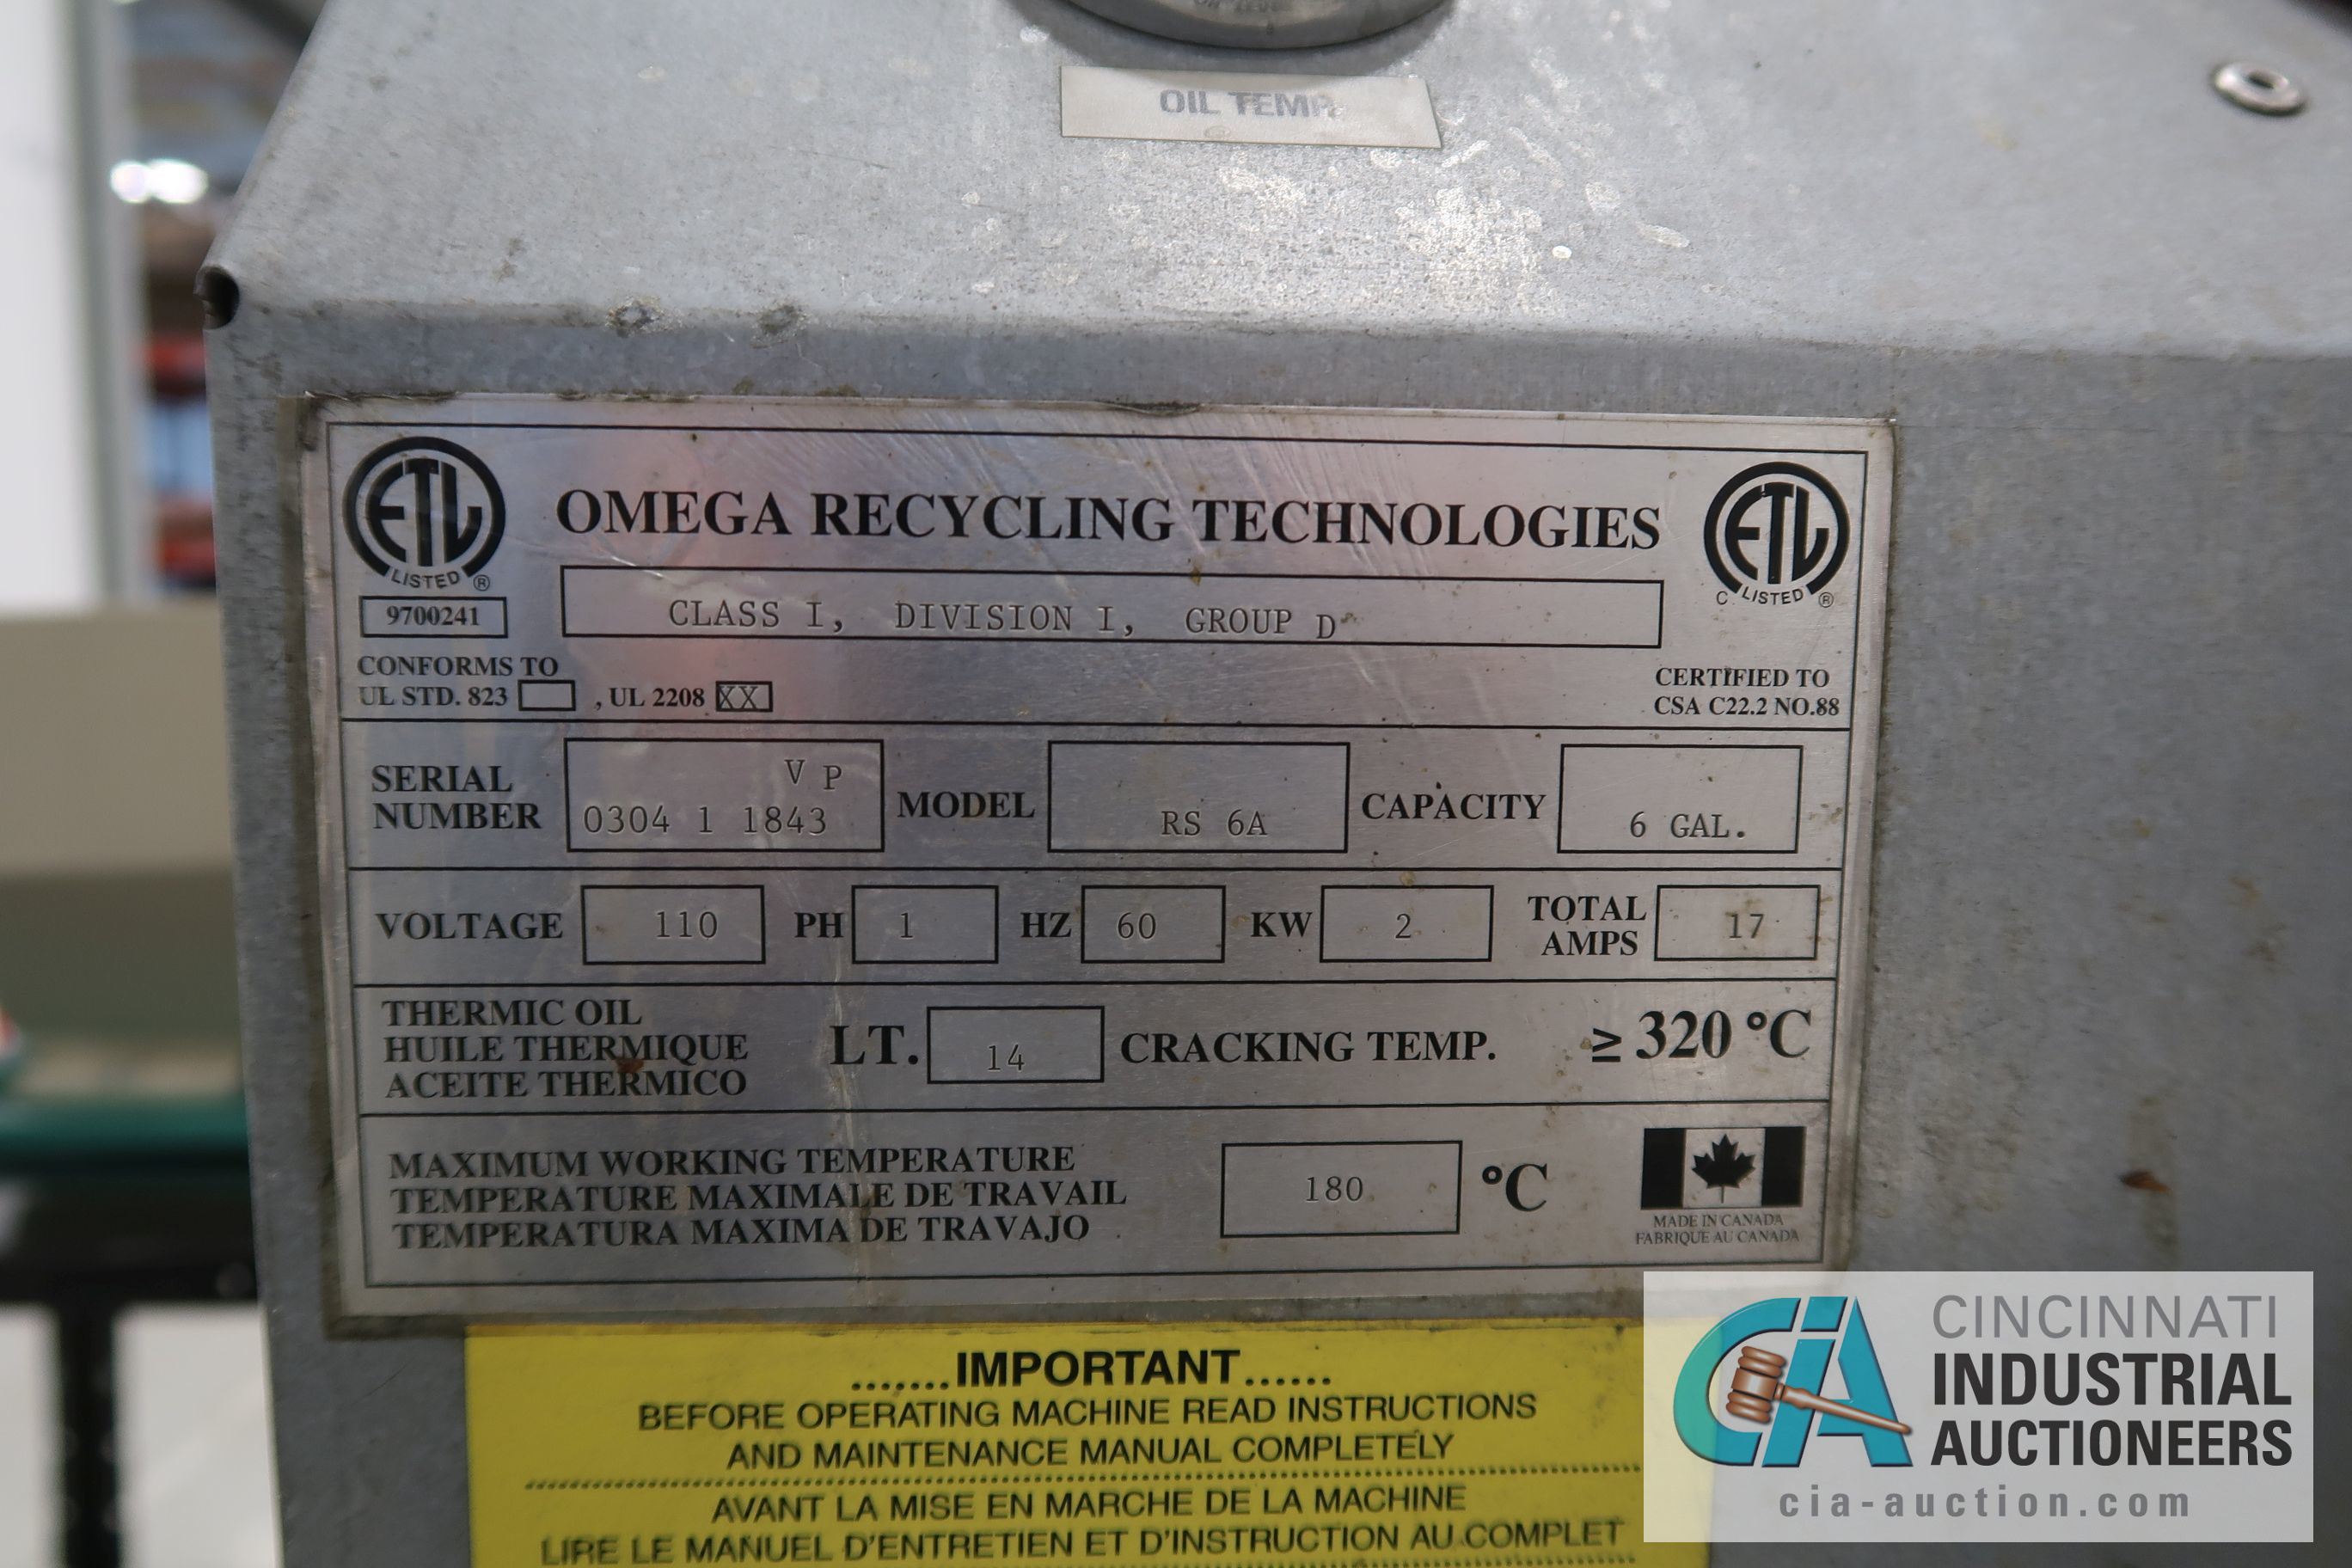 6 GAL. OMEGA RECYCLING TECHNOLIGES MODEL RS-6A SOLVENT RECOVERY UNIT; S/N 0304-1843VP - Image 4 of 5